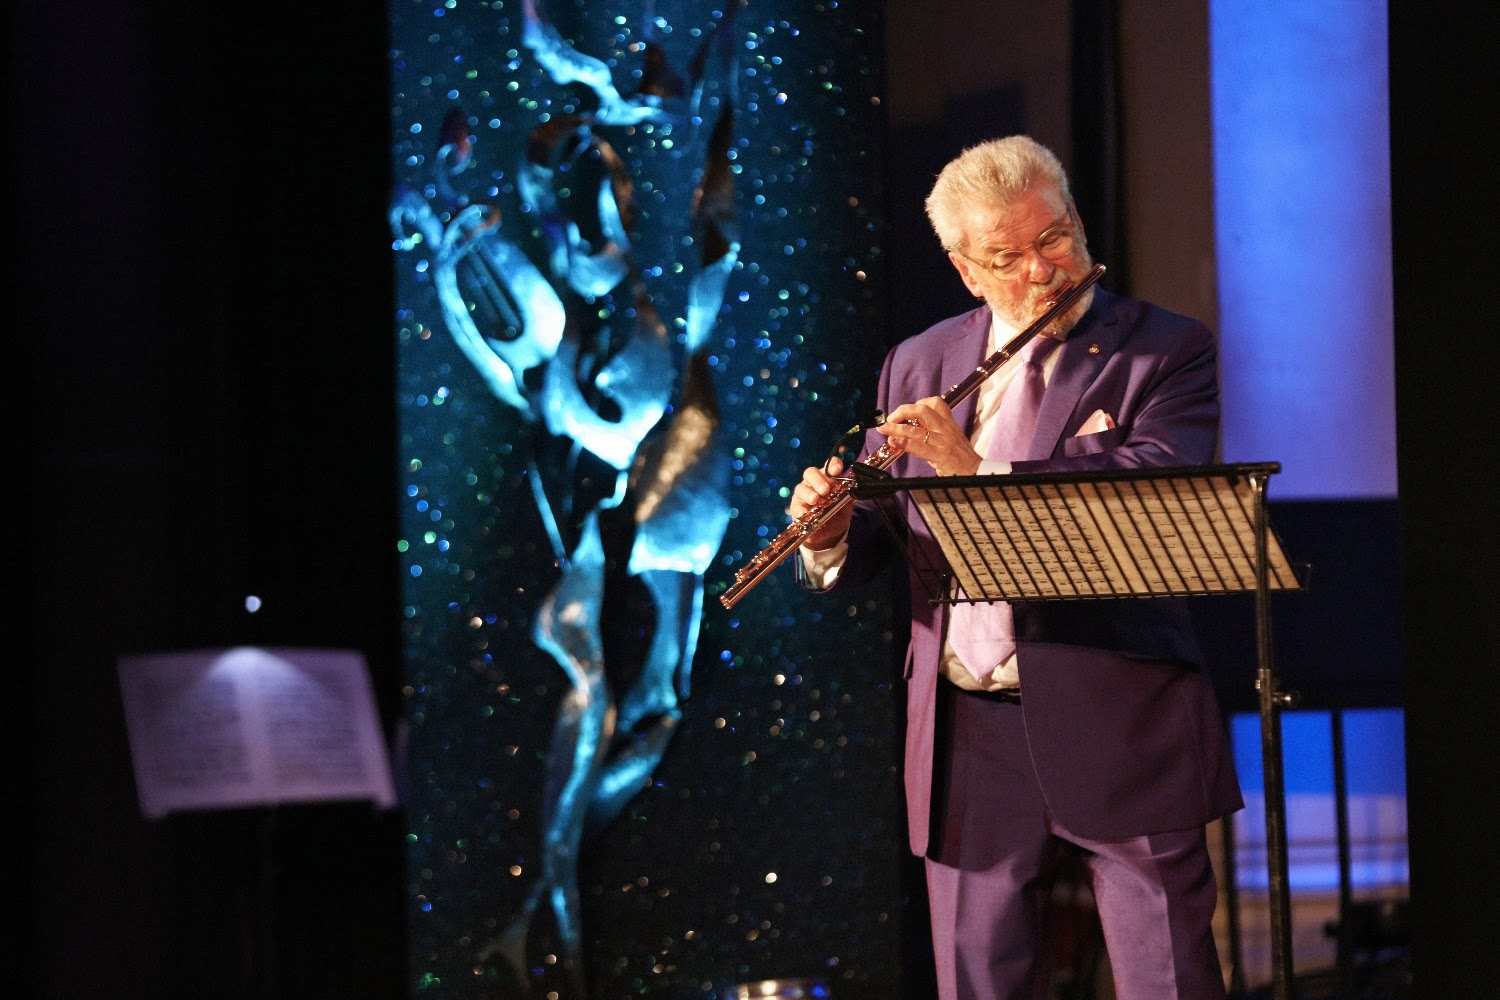 Sr James Galway performing at last night's Gramophone Awards